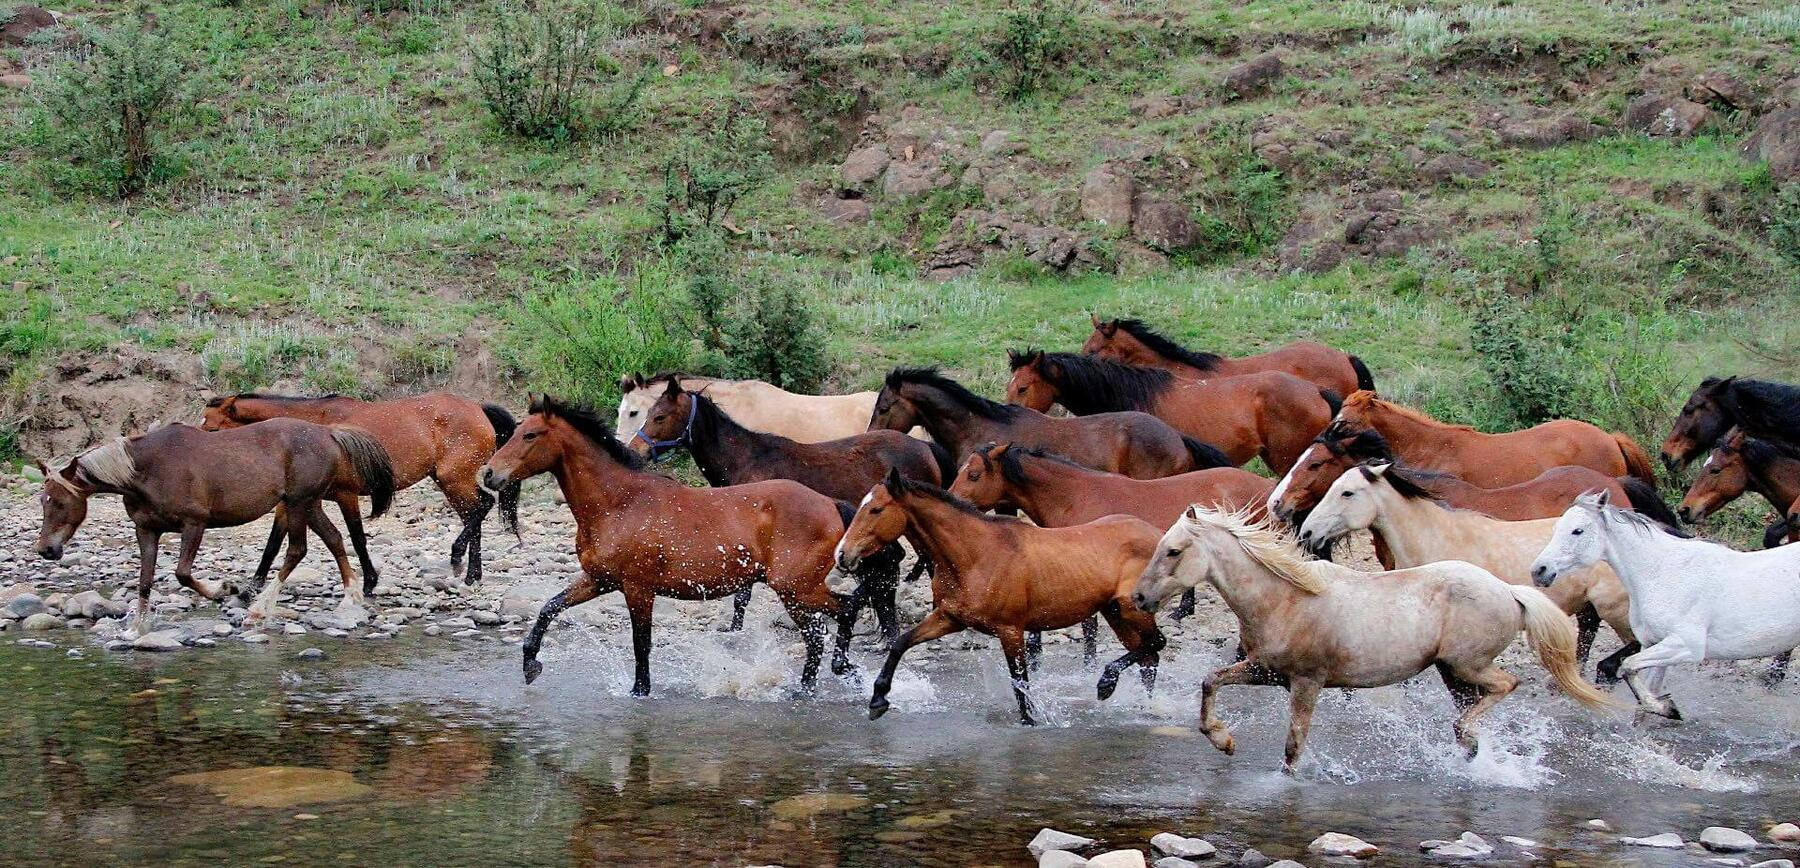 Bushman's Nek Horse Riding Horses Running Through A River